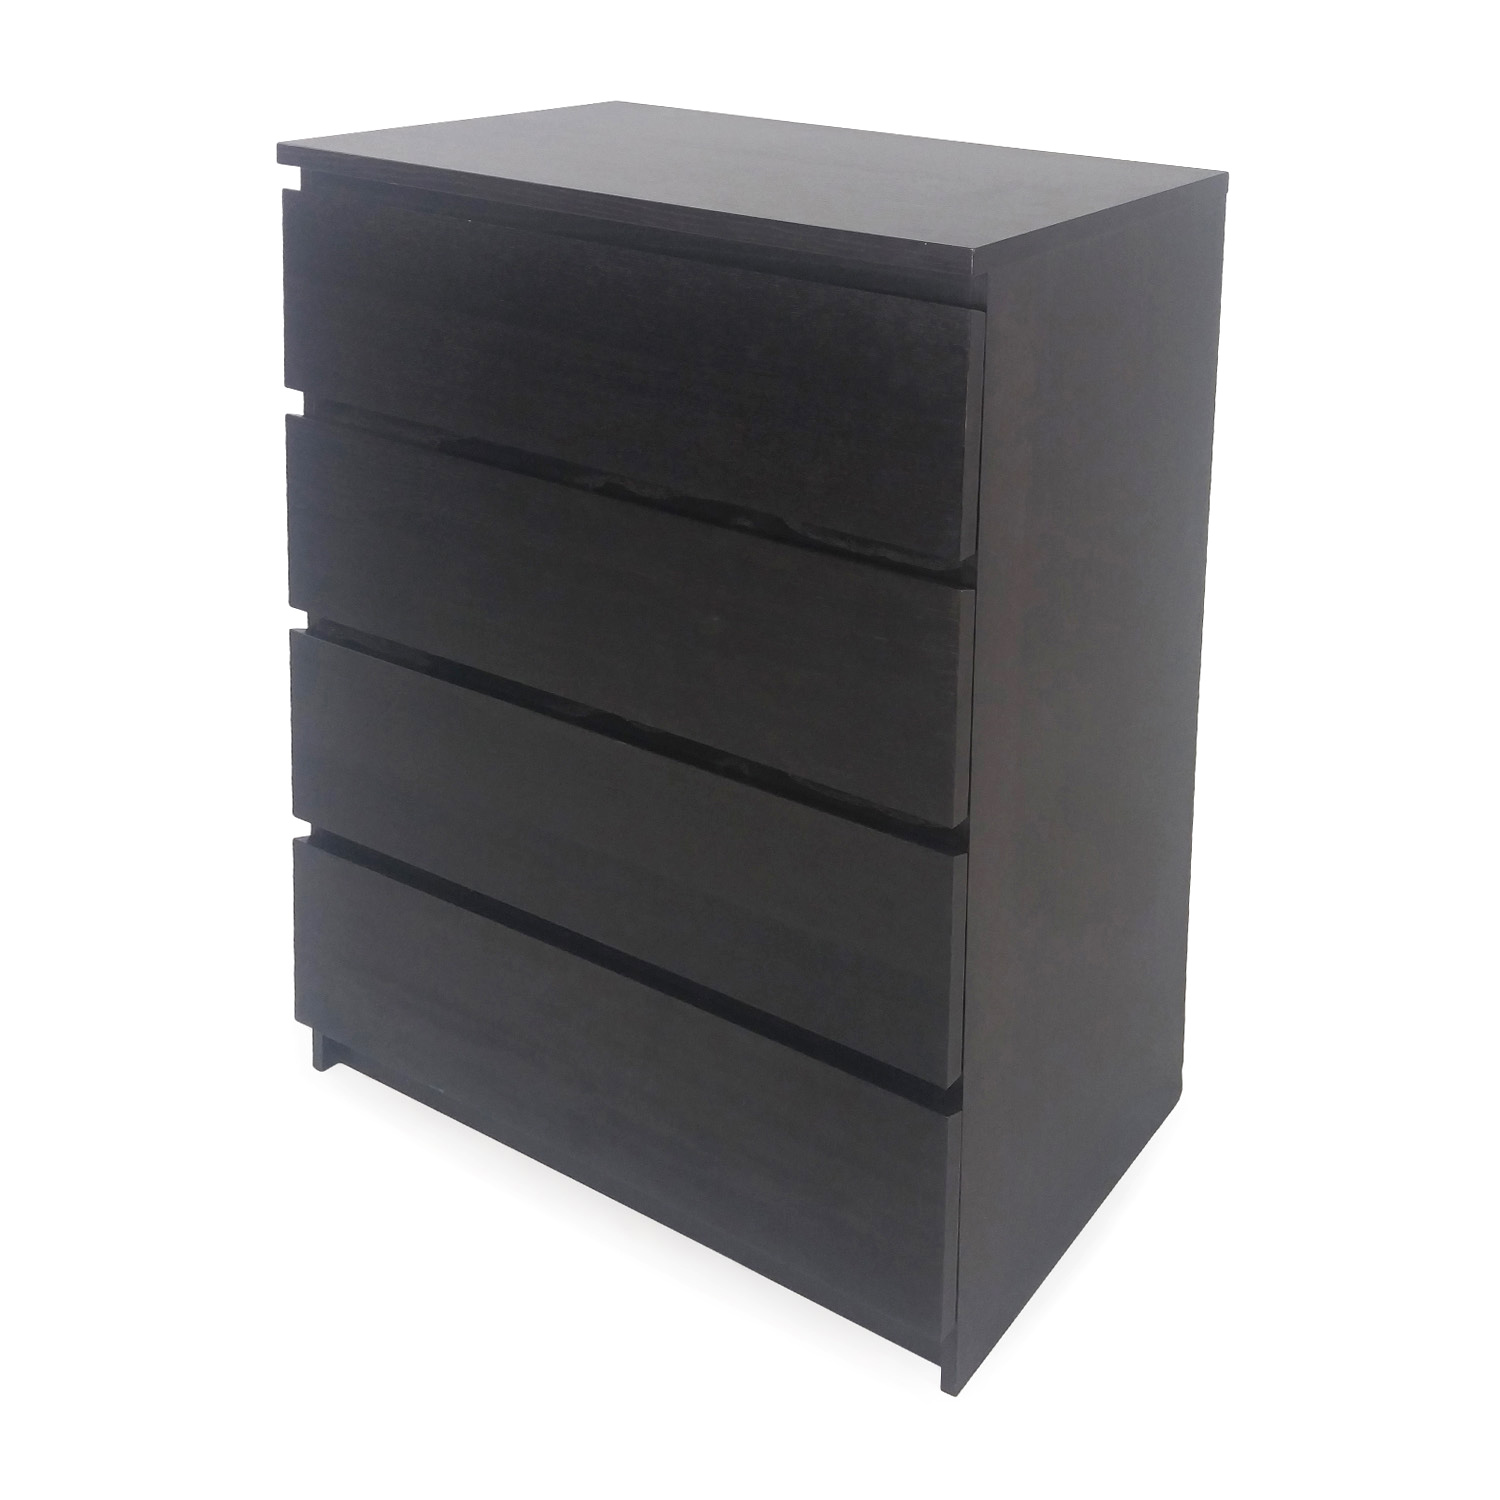 60 off ikea malm 4 drawer dresser storage. Black Bedroom Furniture Sets. Home Design Ideas